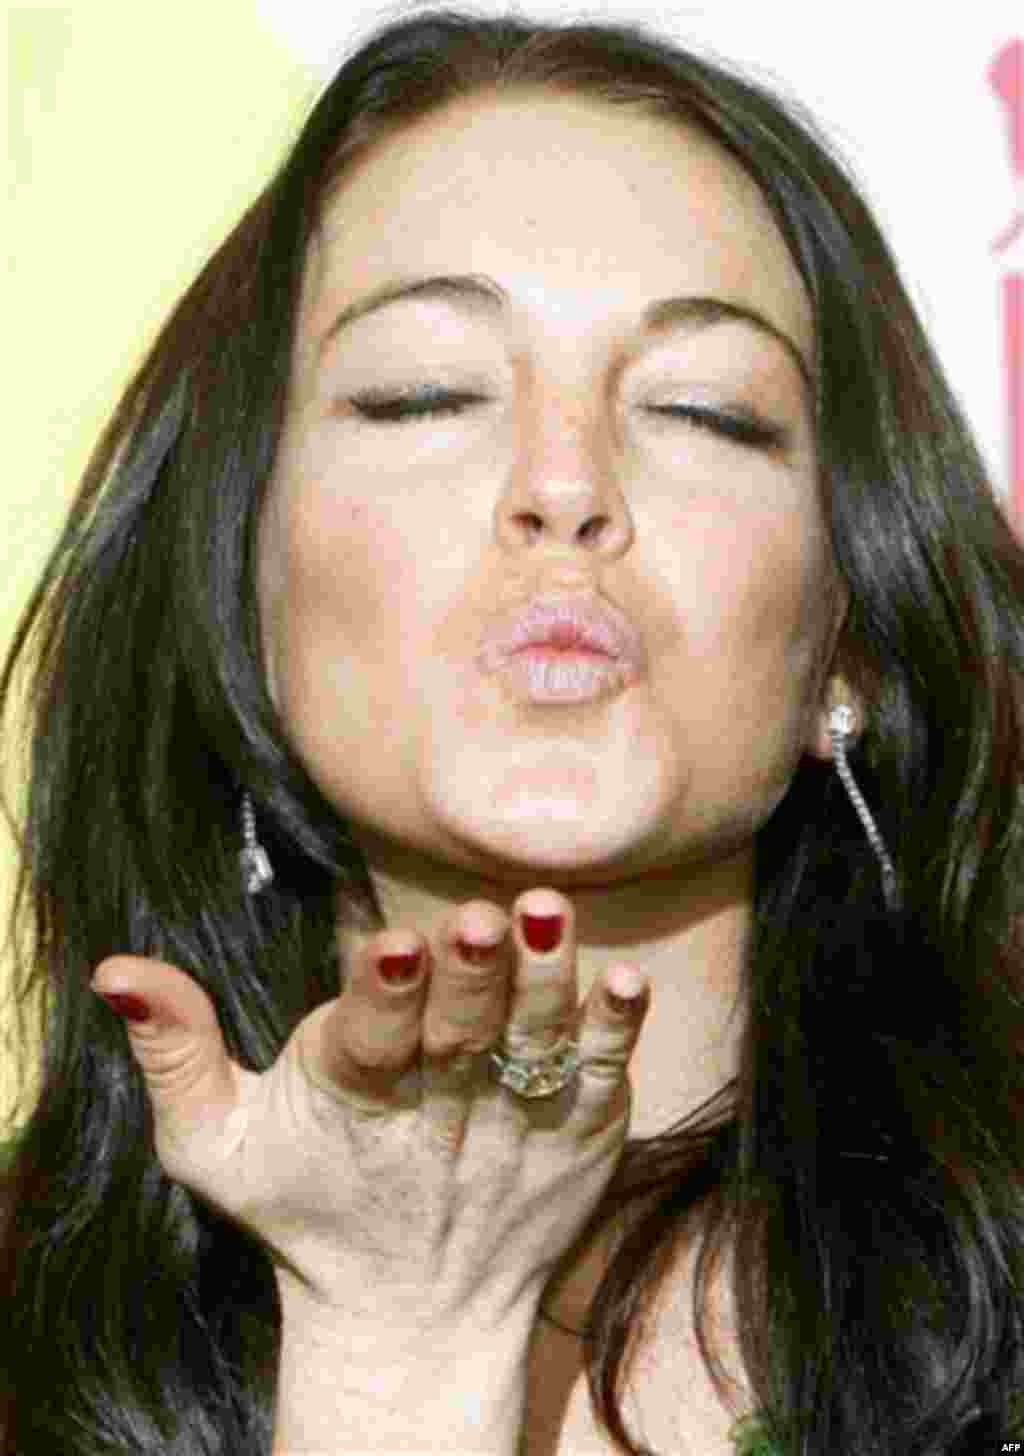 ** FILE ** Actress Lindsay Lohan blows a kiss during a photocall following a news conference to present the film 'Bobby' at the 63rd edition of the Venice film festival in Venice, Italy, in this file photo taken Tuesday, Sept. 5, 2006. Hard to believe now